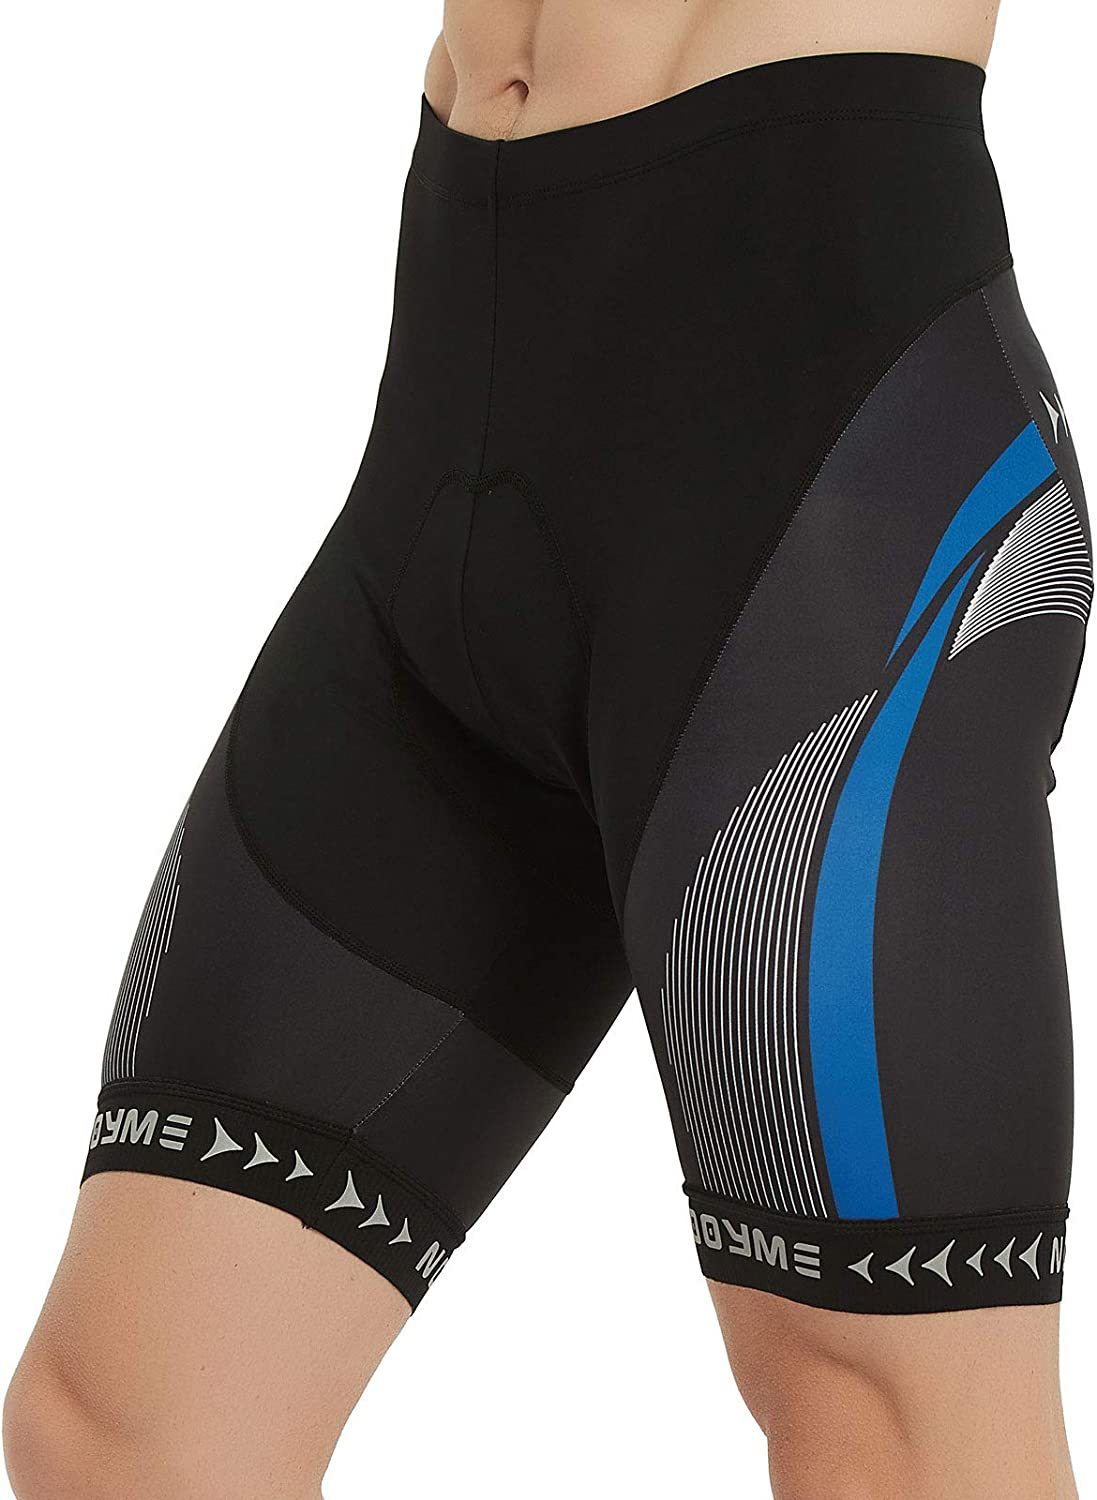 NOOYME Men's Cycling Shorts 3D Riding Gel Under blast sales Padded Selling and selling B Bicycle